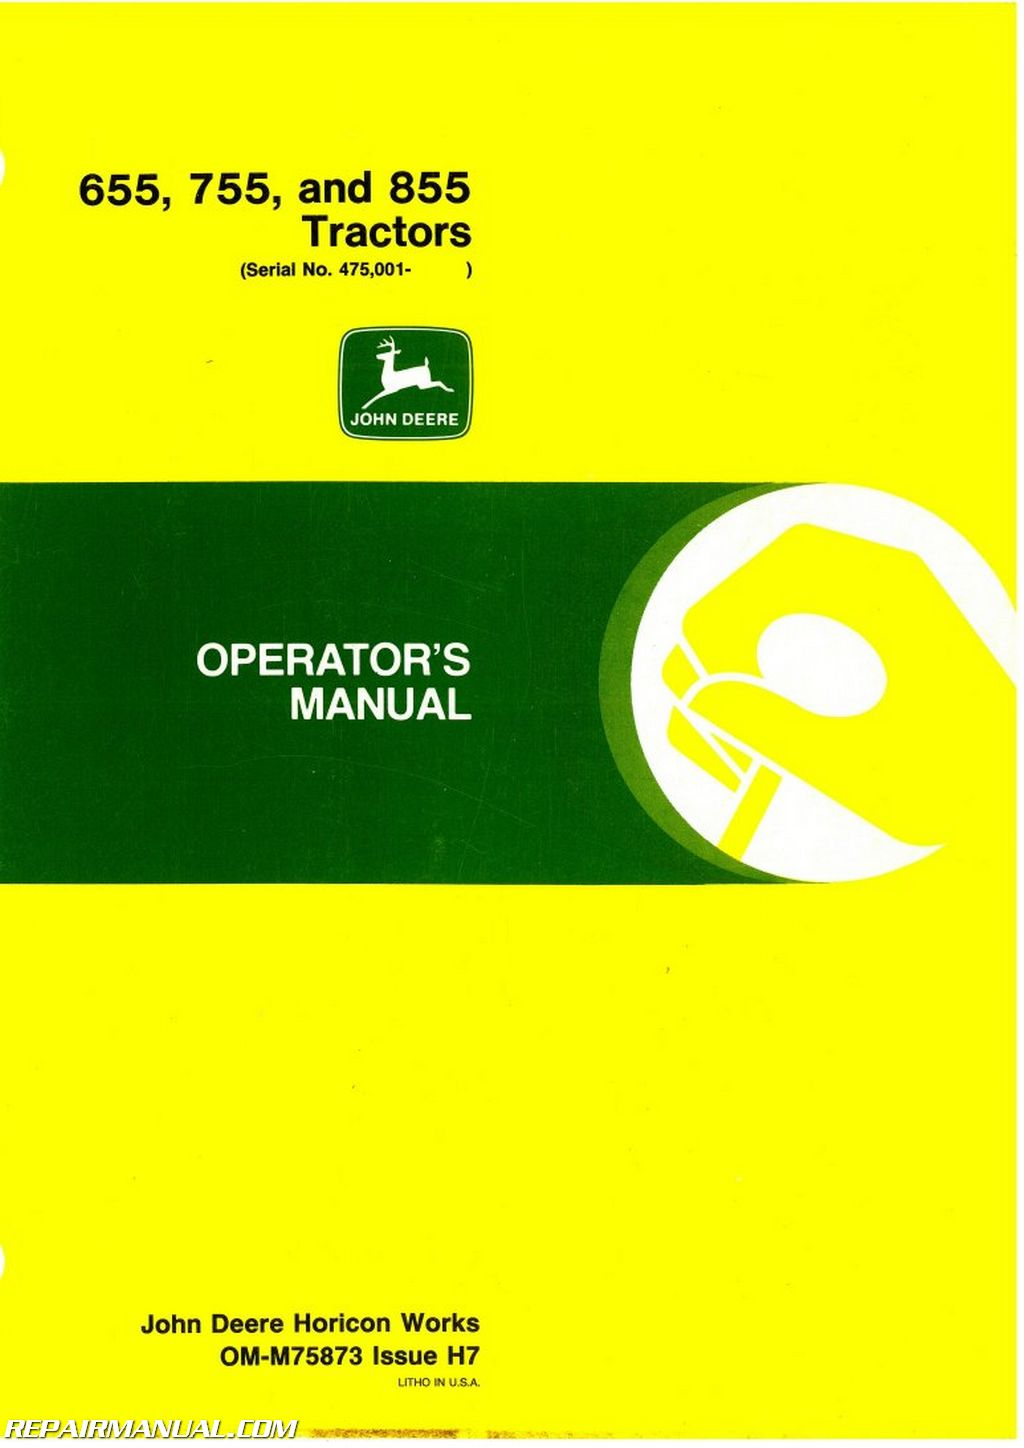 John deere 655 755 855 tractors operators manual asfbconference2016 Image collections